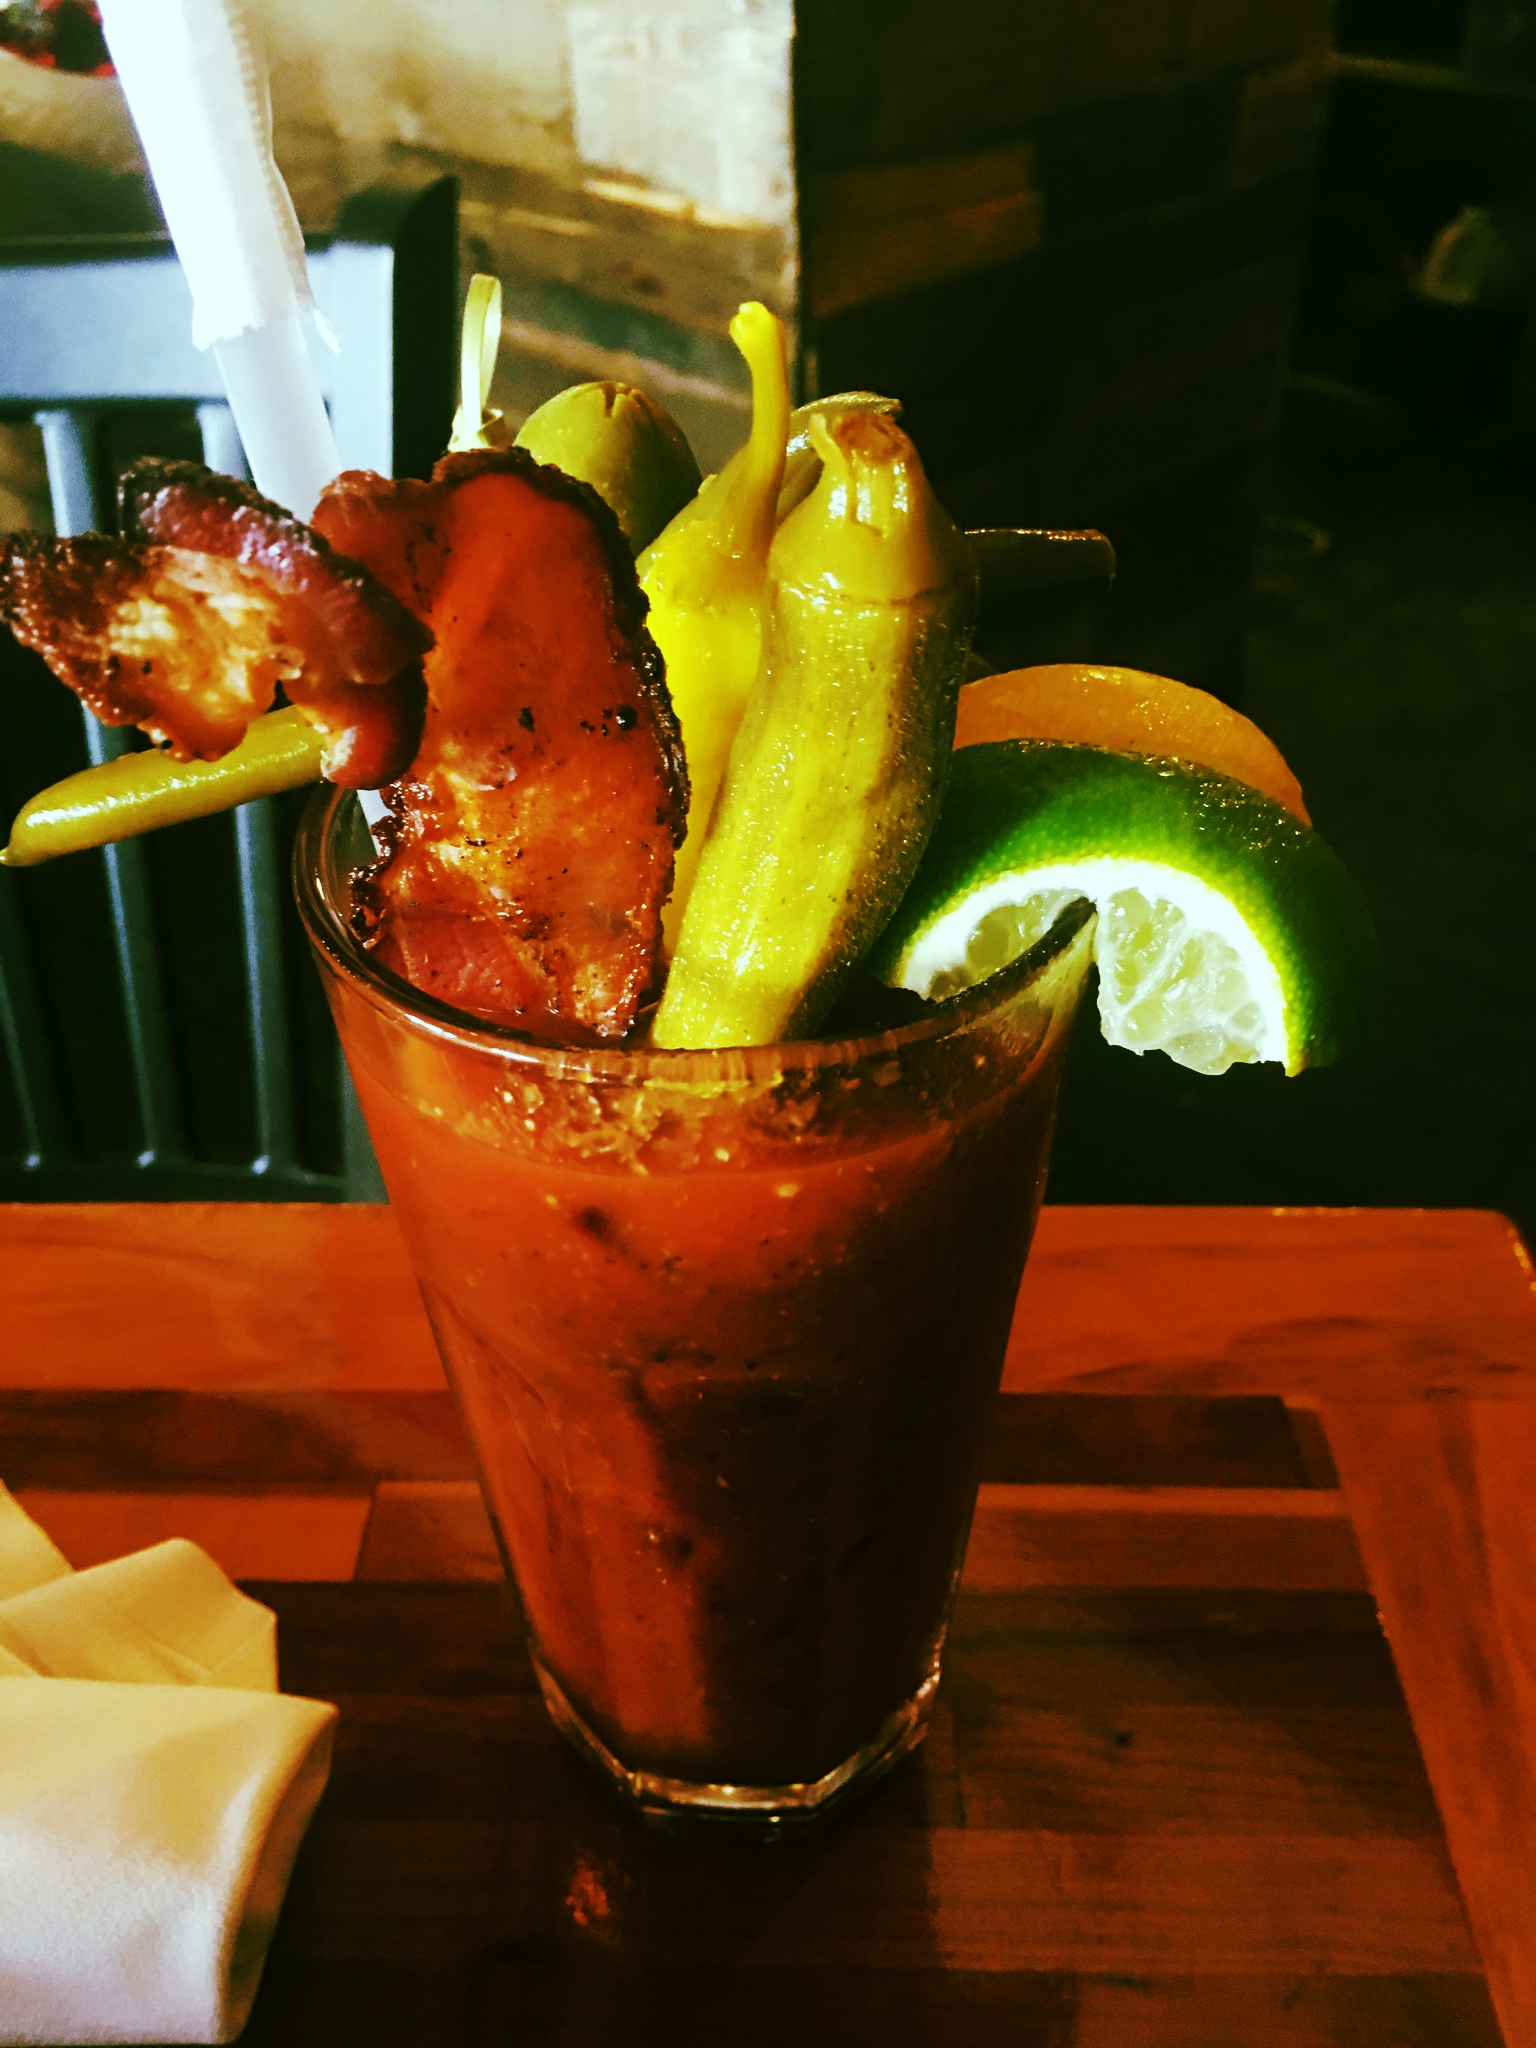 Bacon and Pickled Okra - Bloody Mary - avec Bacon, Gombos, Olives...